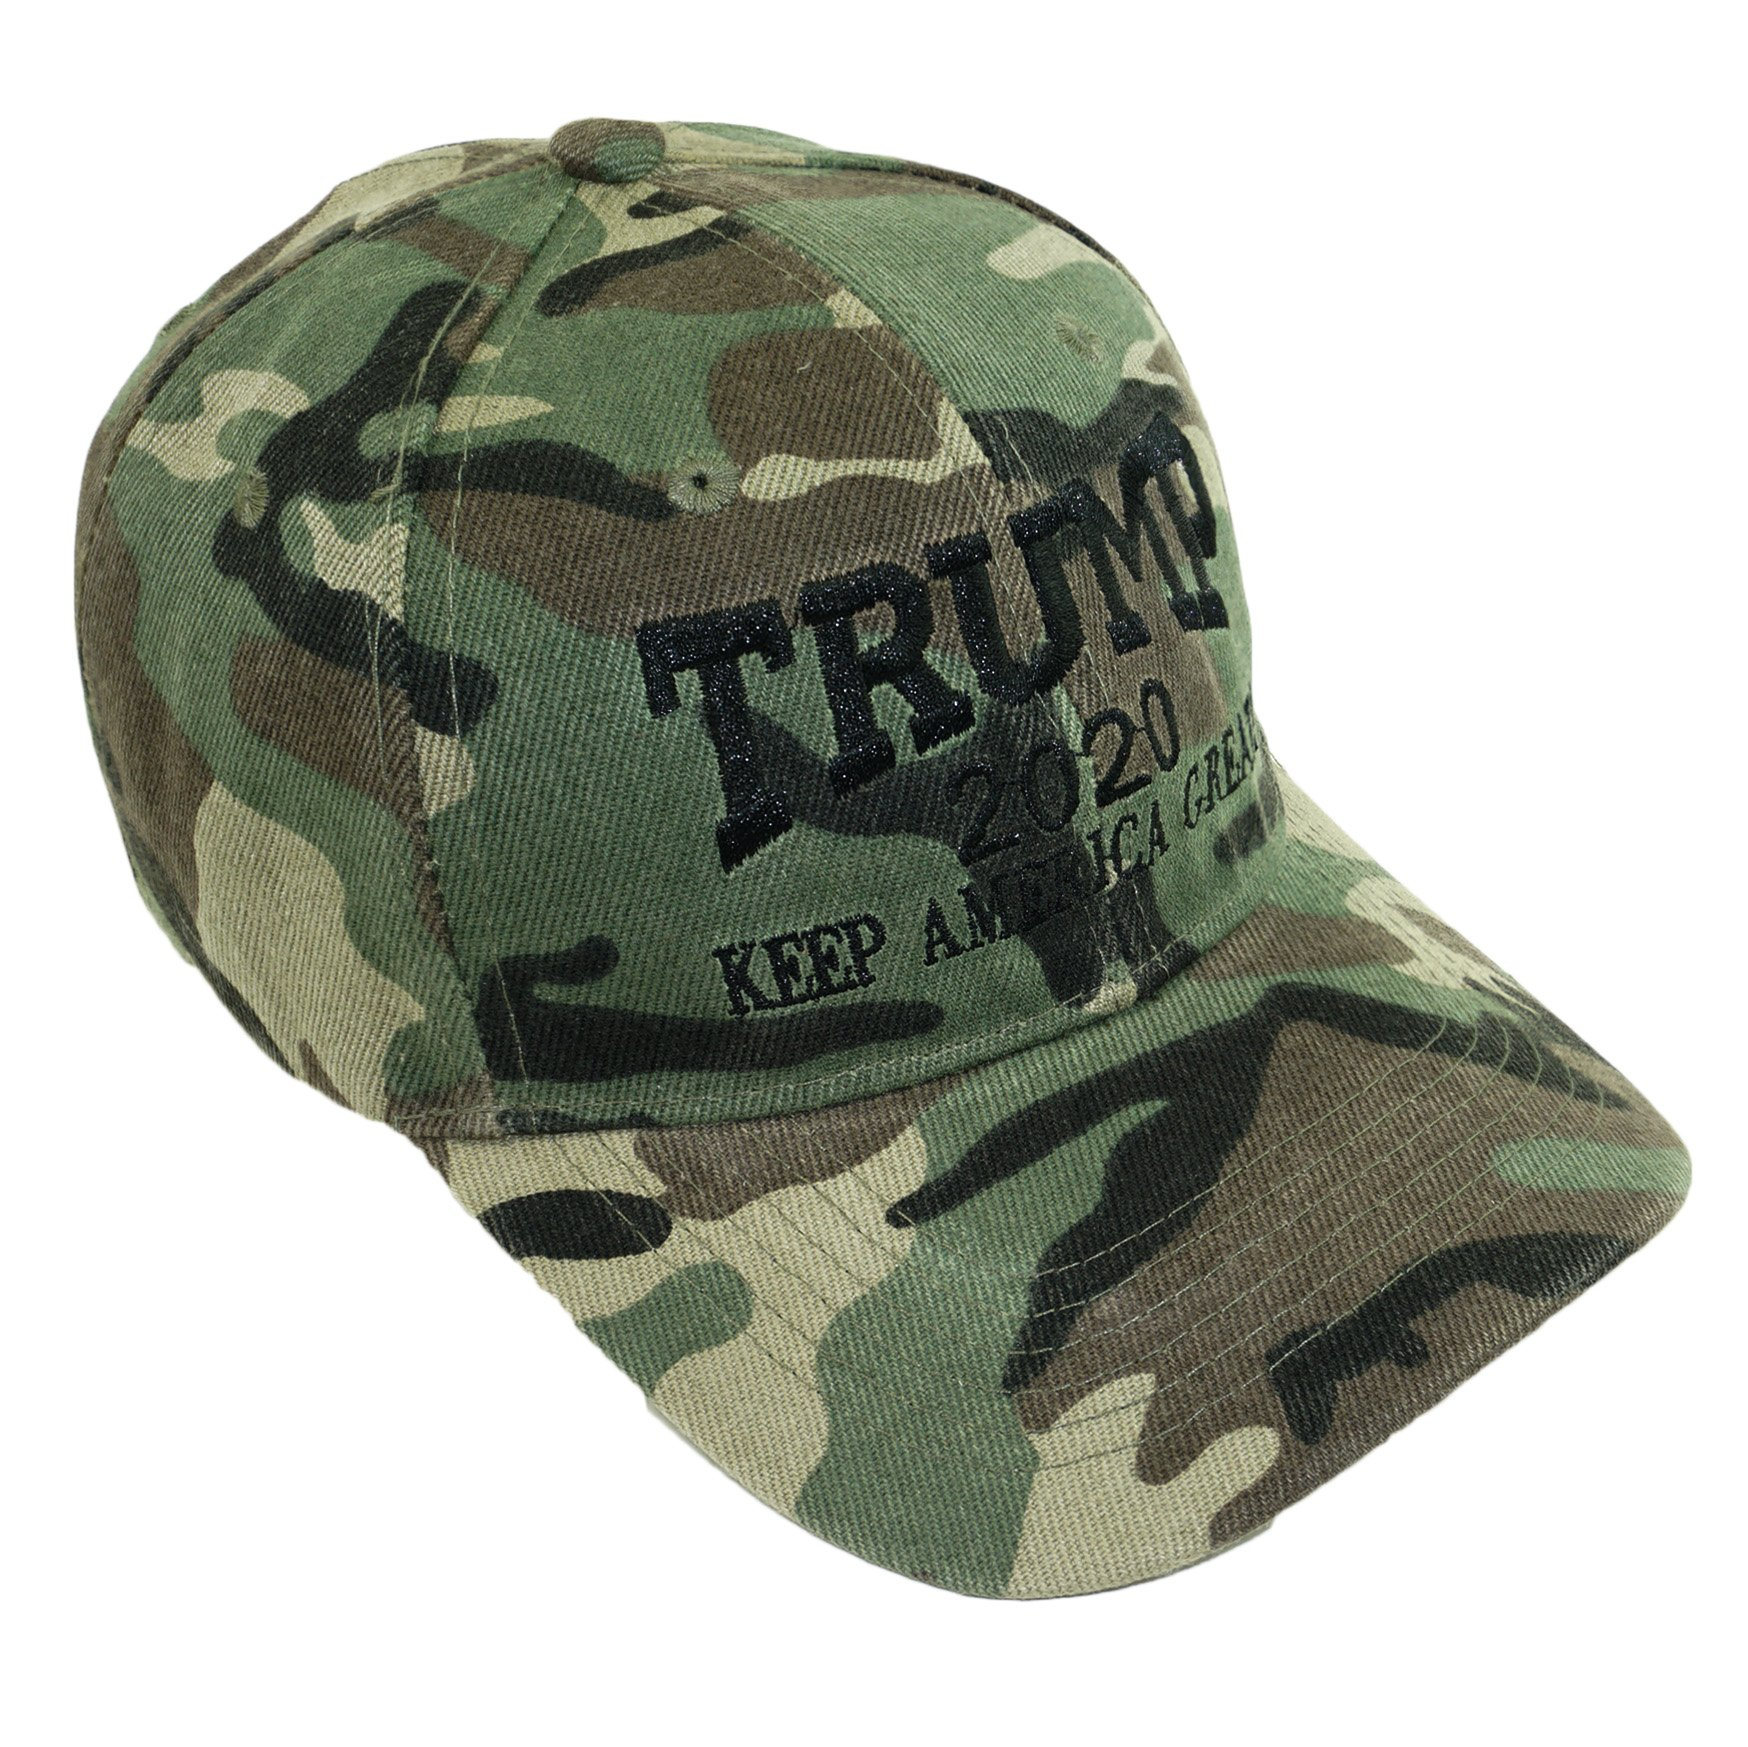 d6fa5ecc2f58a Bingoo Trump 2020 Keep America Great Embrodiery Campaign Hat USA Baseball  Cap (Camo 02)